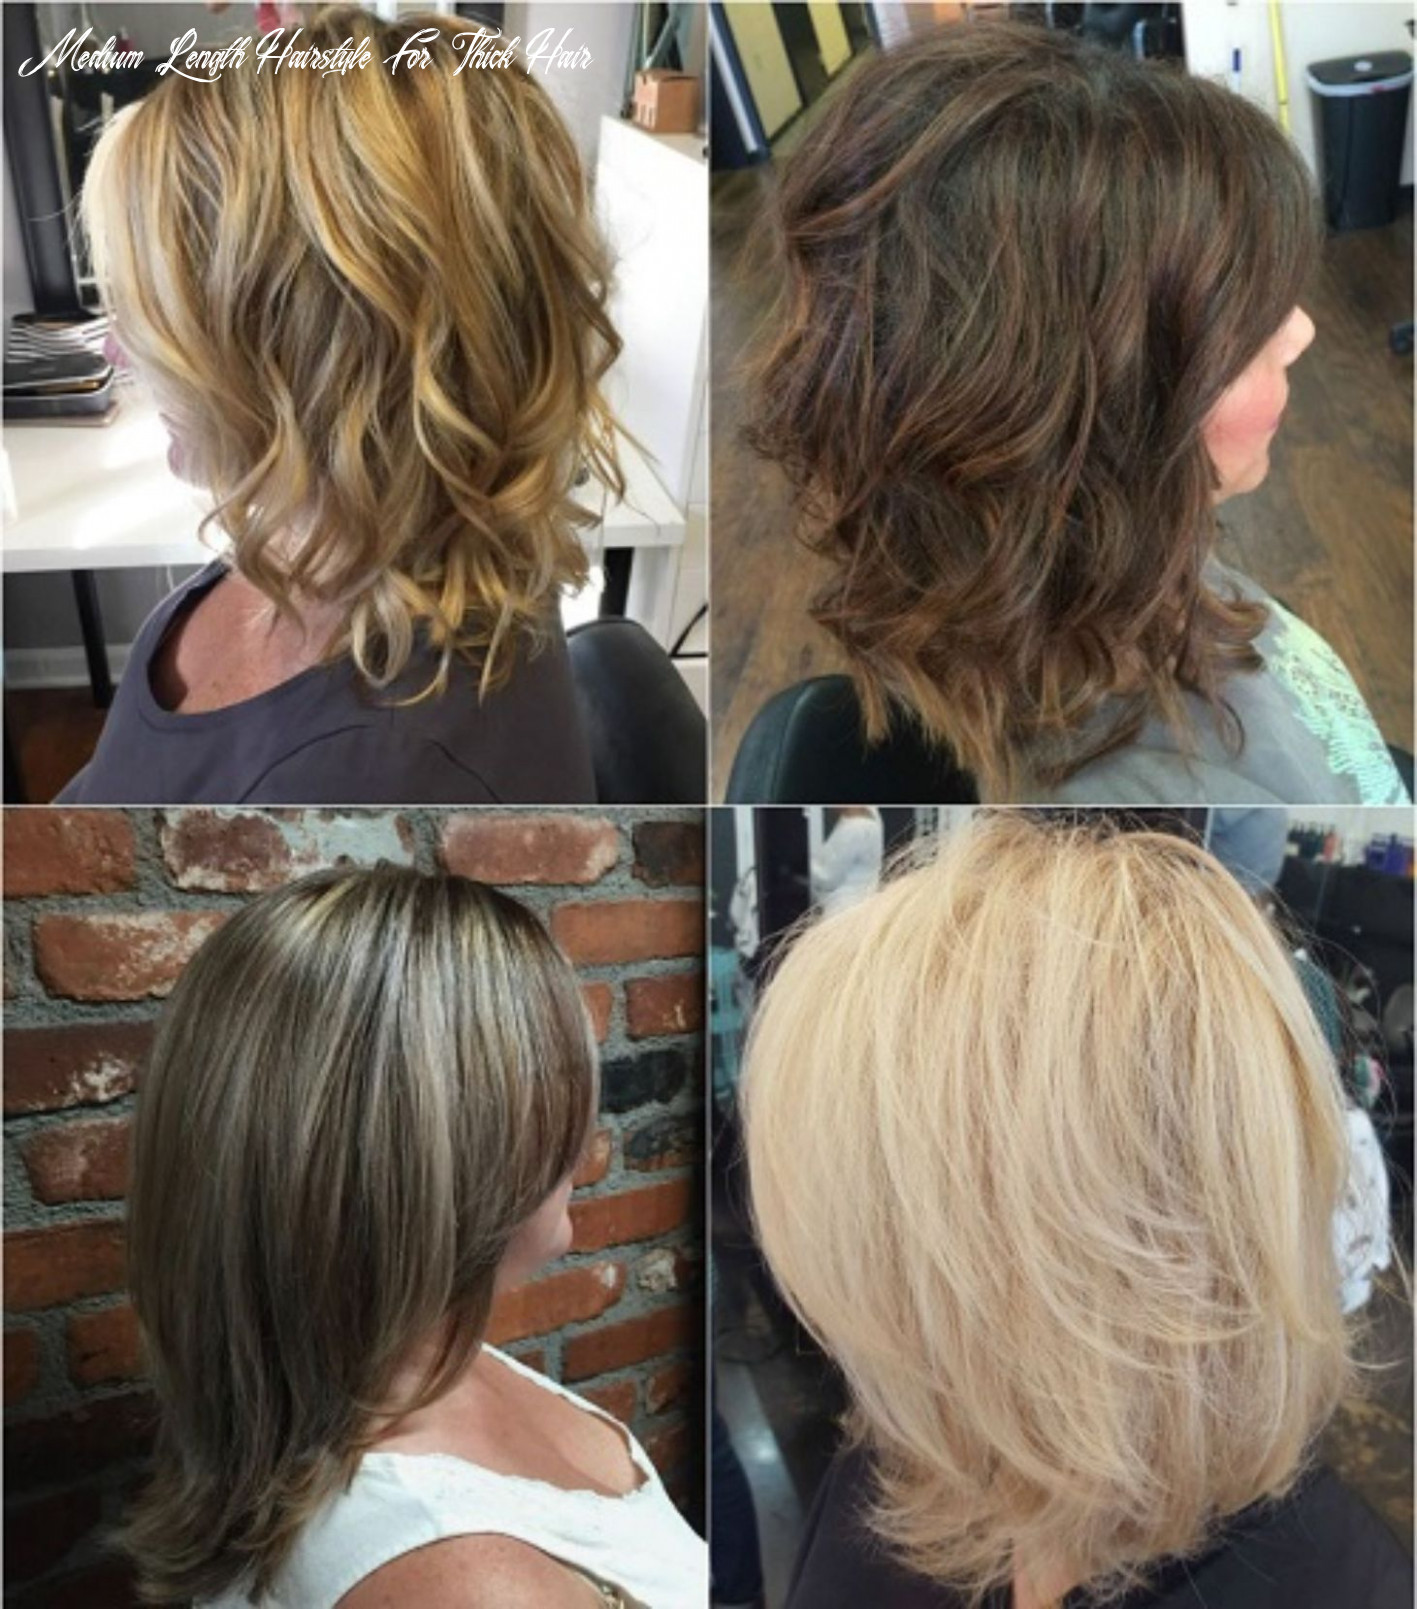 Pin on hairrcuts medium length hairstyle for thick hair